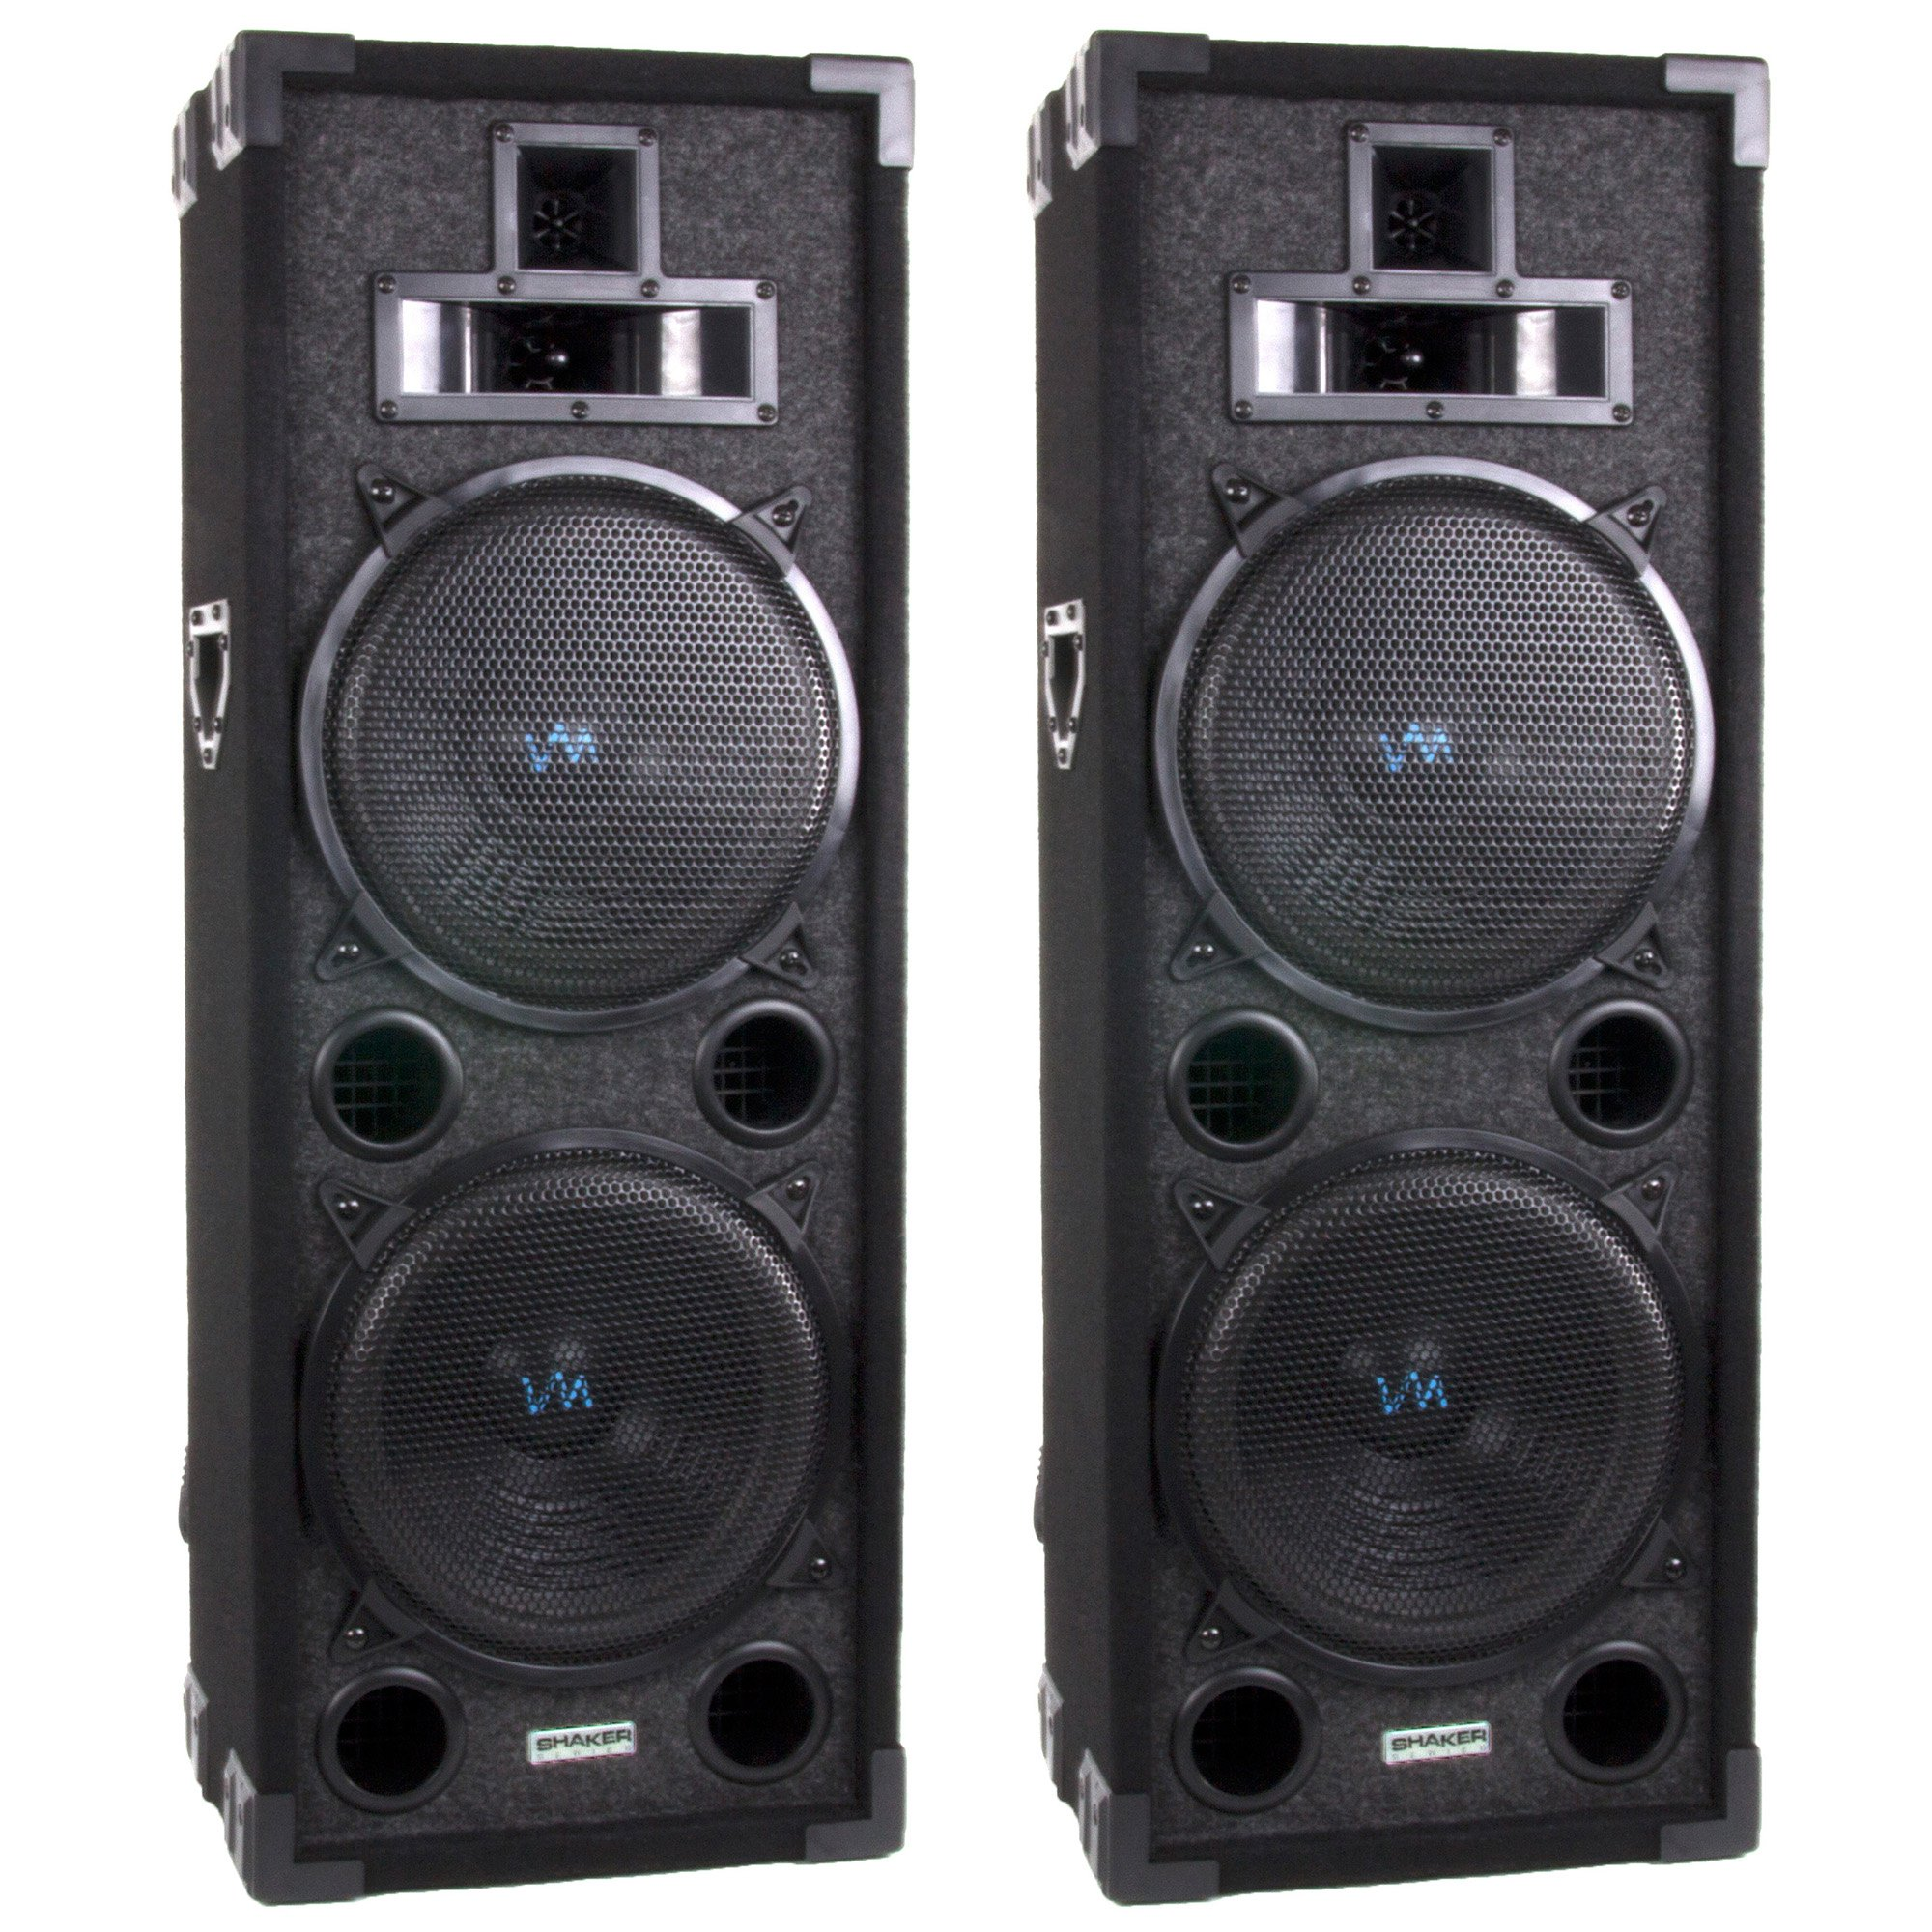 VM Audio 800 Watt 4 Way 8 Inch DJ Passive Loud Speaker System (Pair) | VAS428P